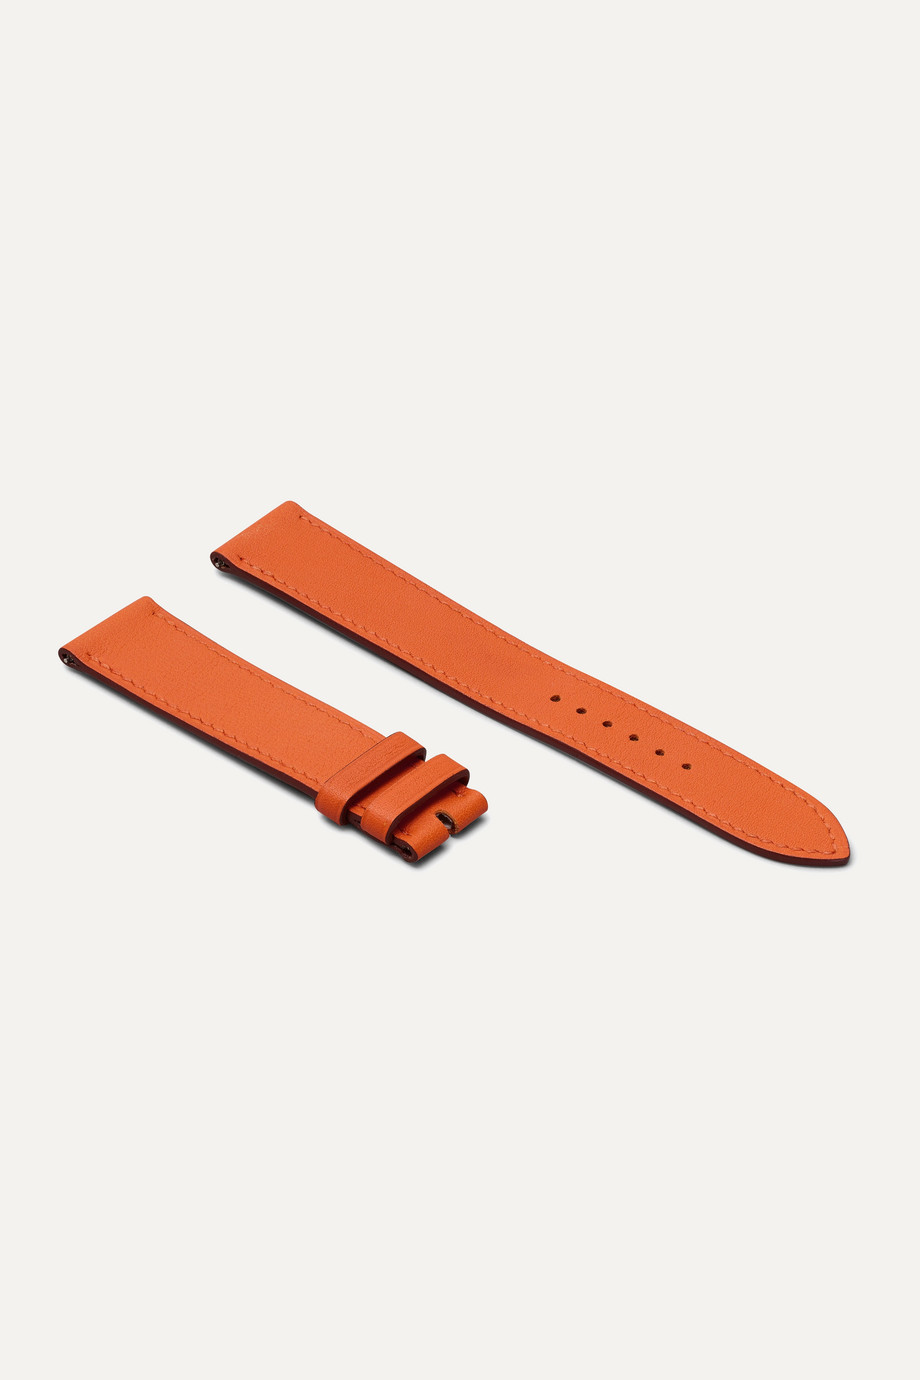 Hermès Timepieces Cape Cod Single Tour 29mm leather watch strap